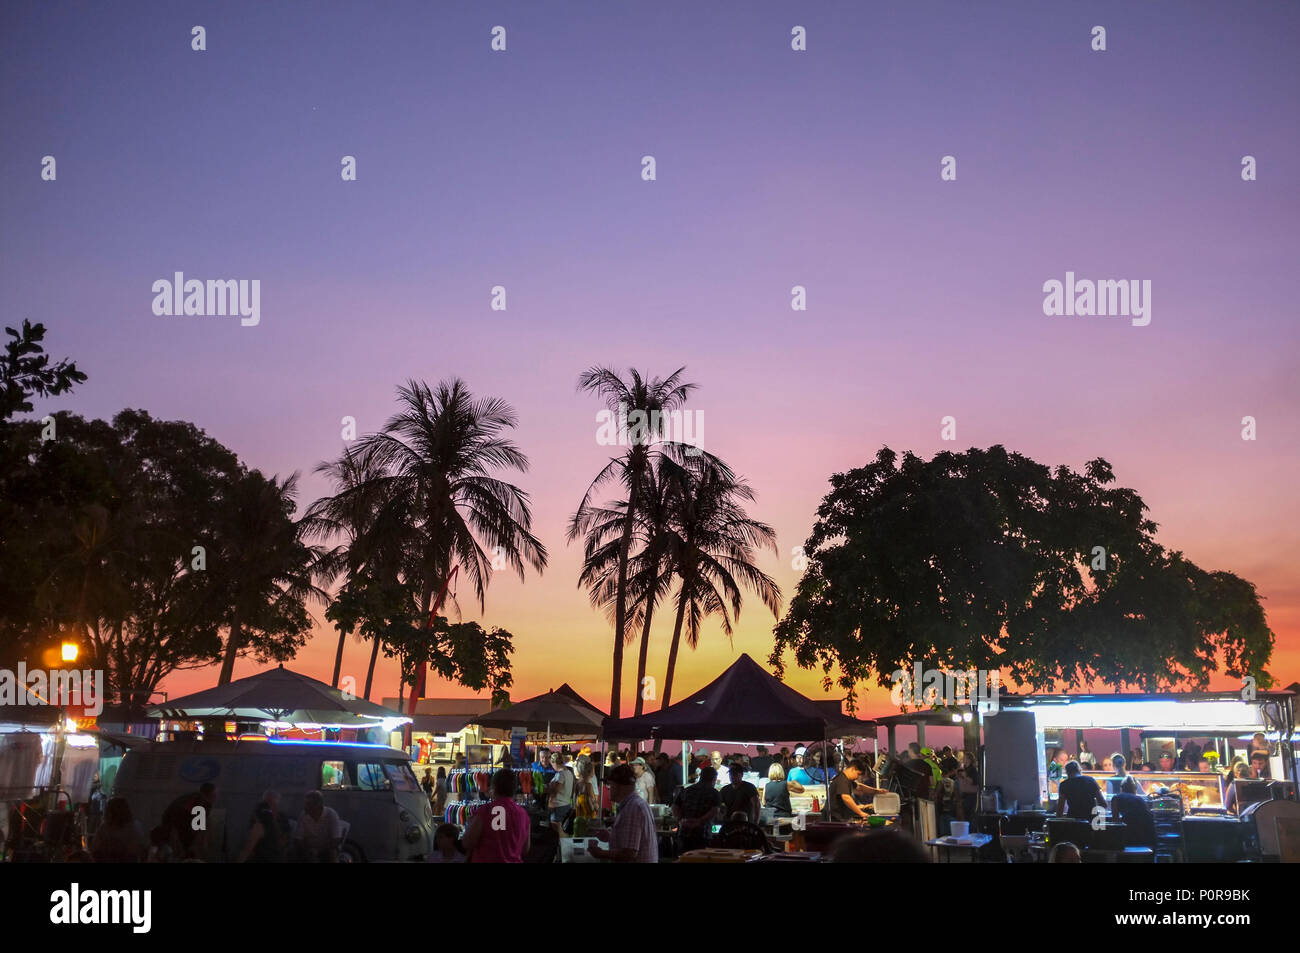 Mindil Beach sunset market in Darwin, Northern Territory, Australia.Stock Photo